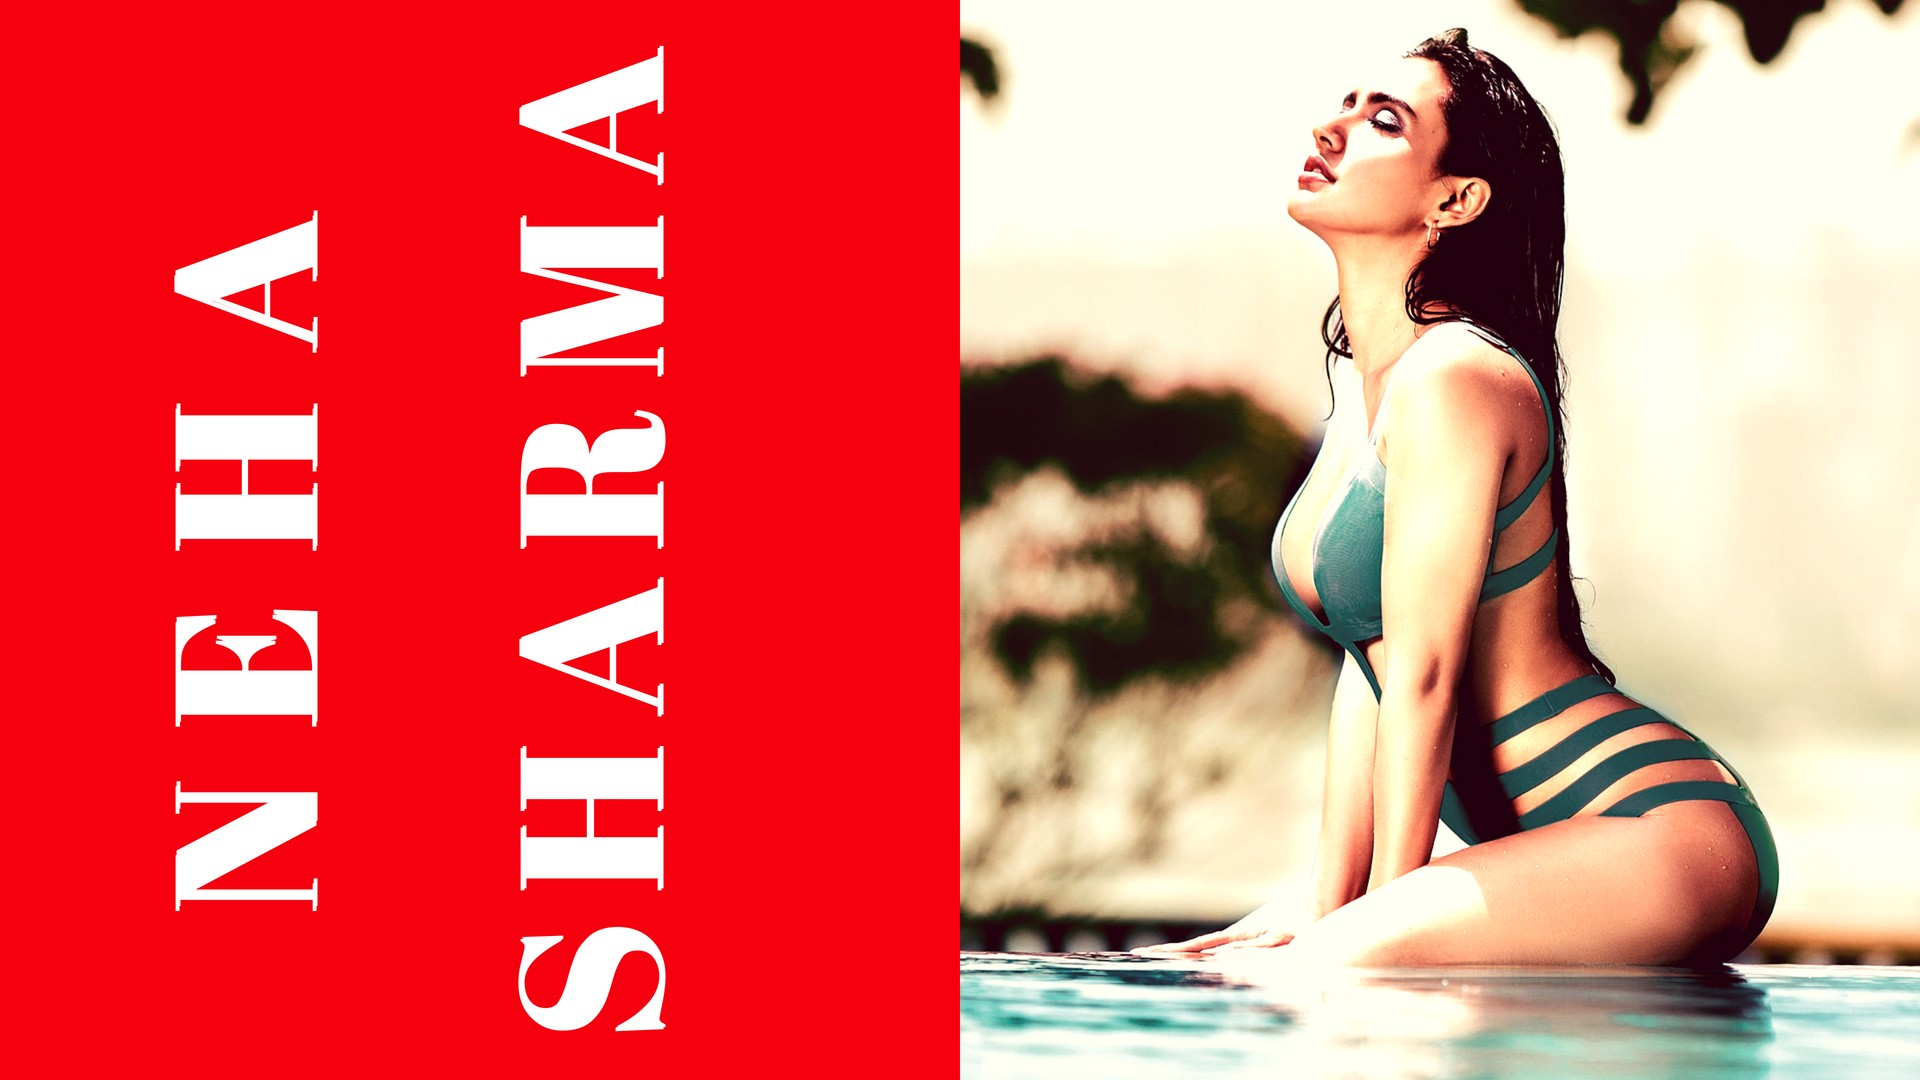 Sexy Neha Sharma - Maxim Magazine Shoot - Sexy Actress Pictures | Hot Actress Pictures - ActressSnaps.com